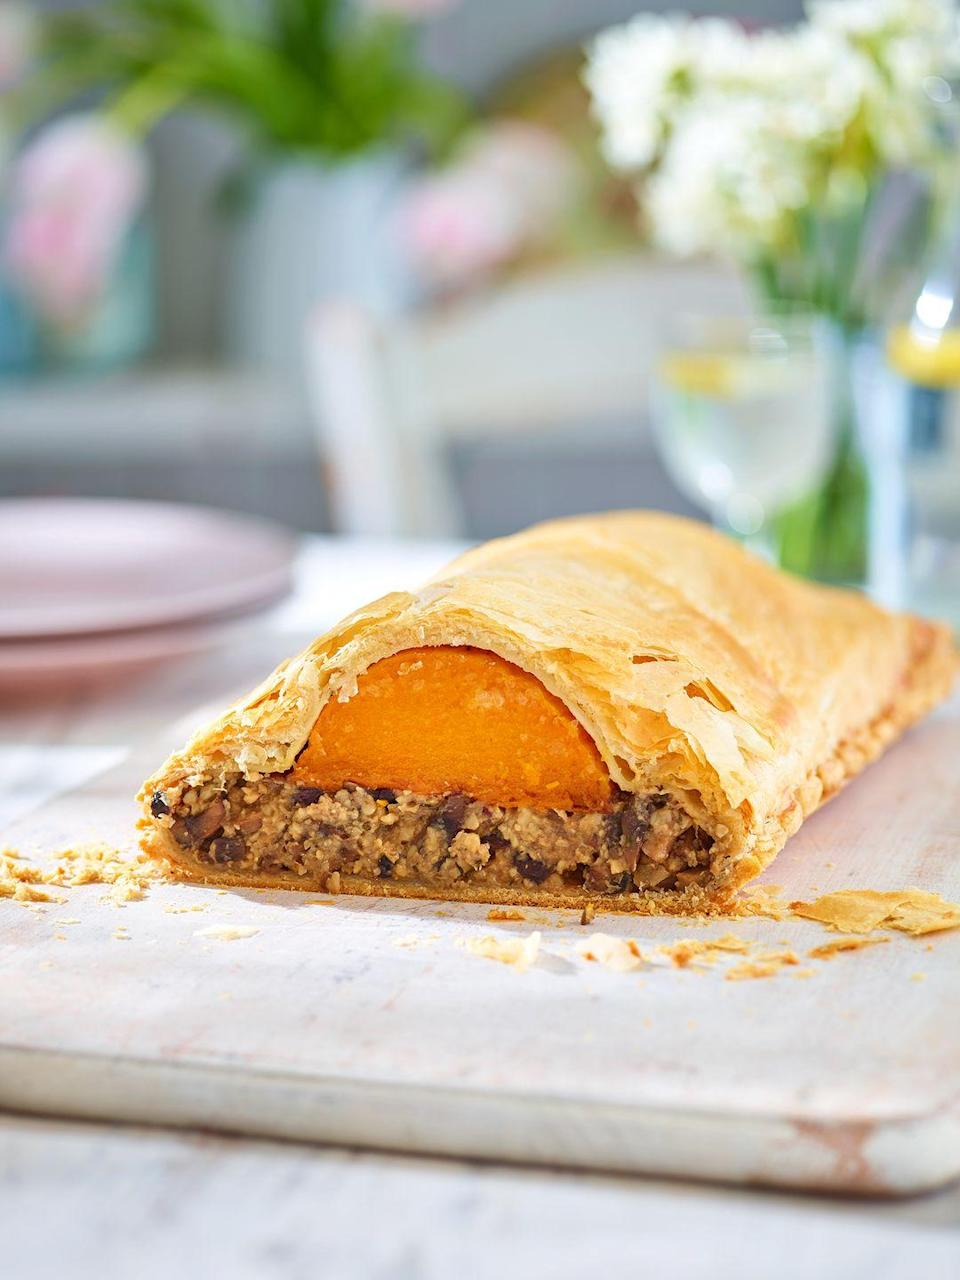 "<p>The miso might sound out of place in this vegan wellington, but it adds a delicious savoury flavour that really boosts the mushrooms.</p><p><strong>Recipe: <a href=""https://www.goodhousekeeping.com/uk/food/recipes/a27126174/vegan-wellington/"" rel=""nofollow noopener"" target=""_blank"" data-ylk=""slk:Butternut and mushroom wellington"" class=""link rapid-noclick-resp"">Butternut and mushroom wellington</a></strong></p>"